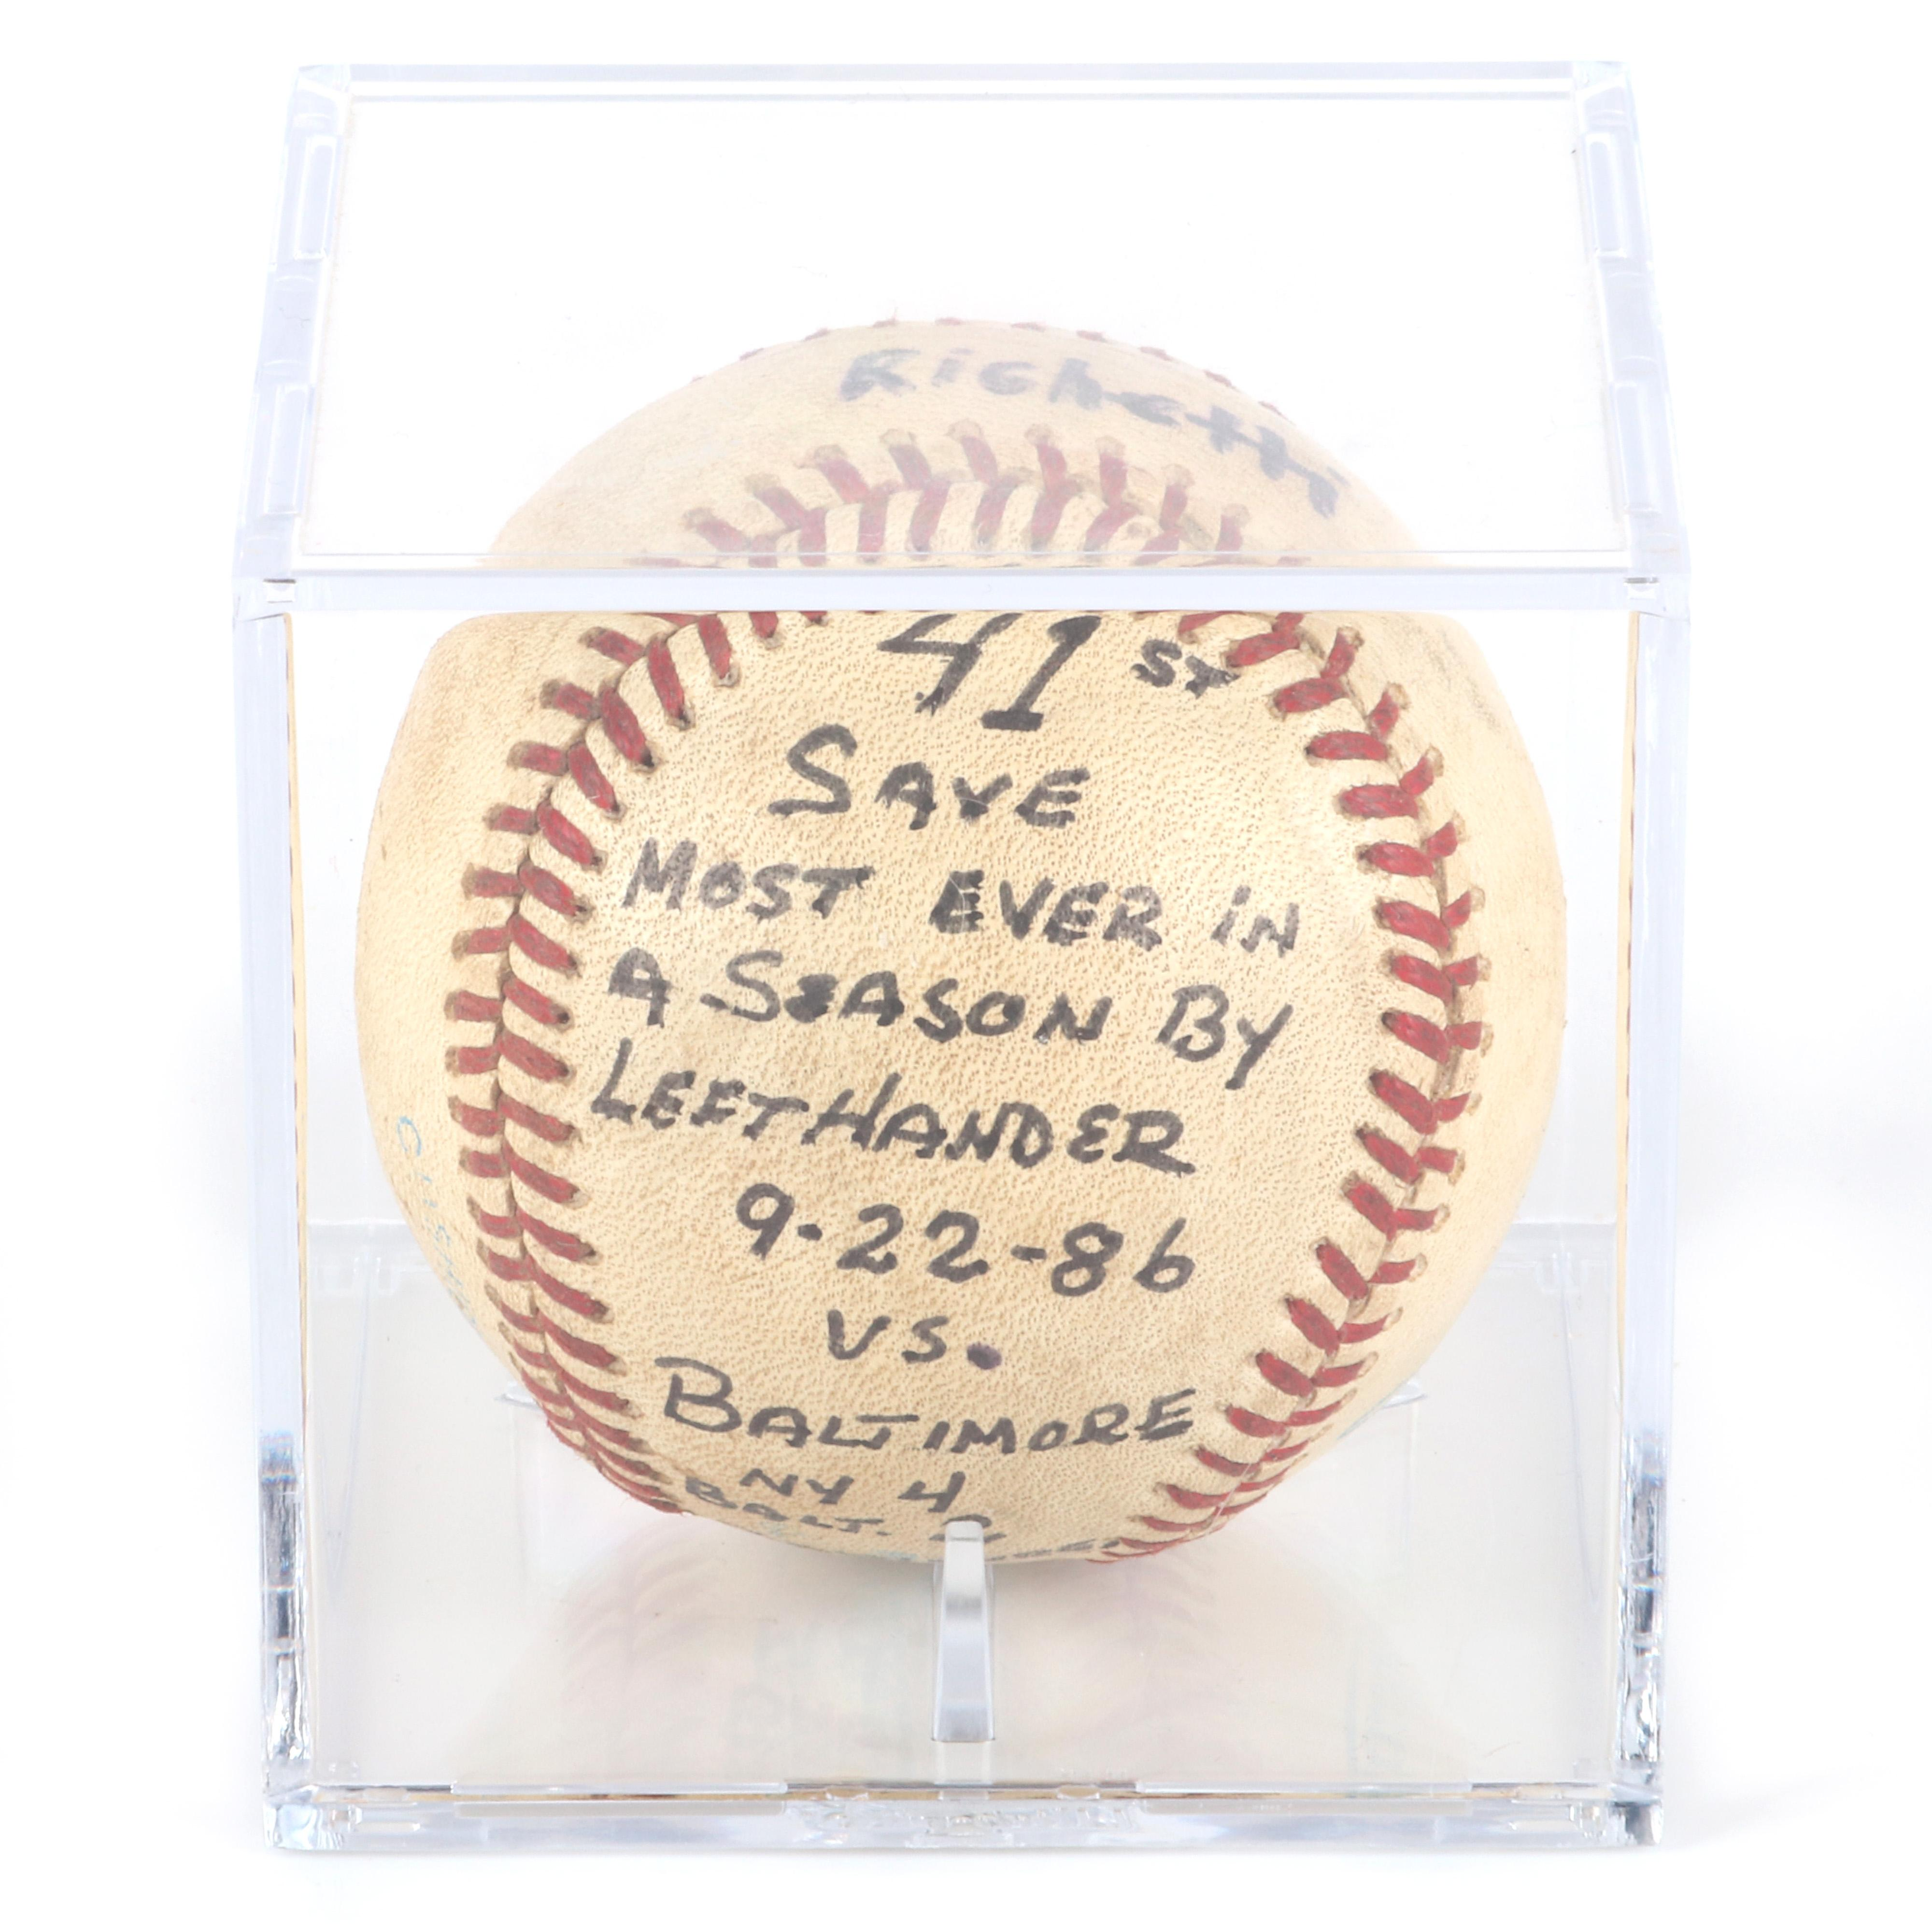 1986 Dave Righetti NY Yankees 41st Save Game Used Baseball, Most by Lefty